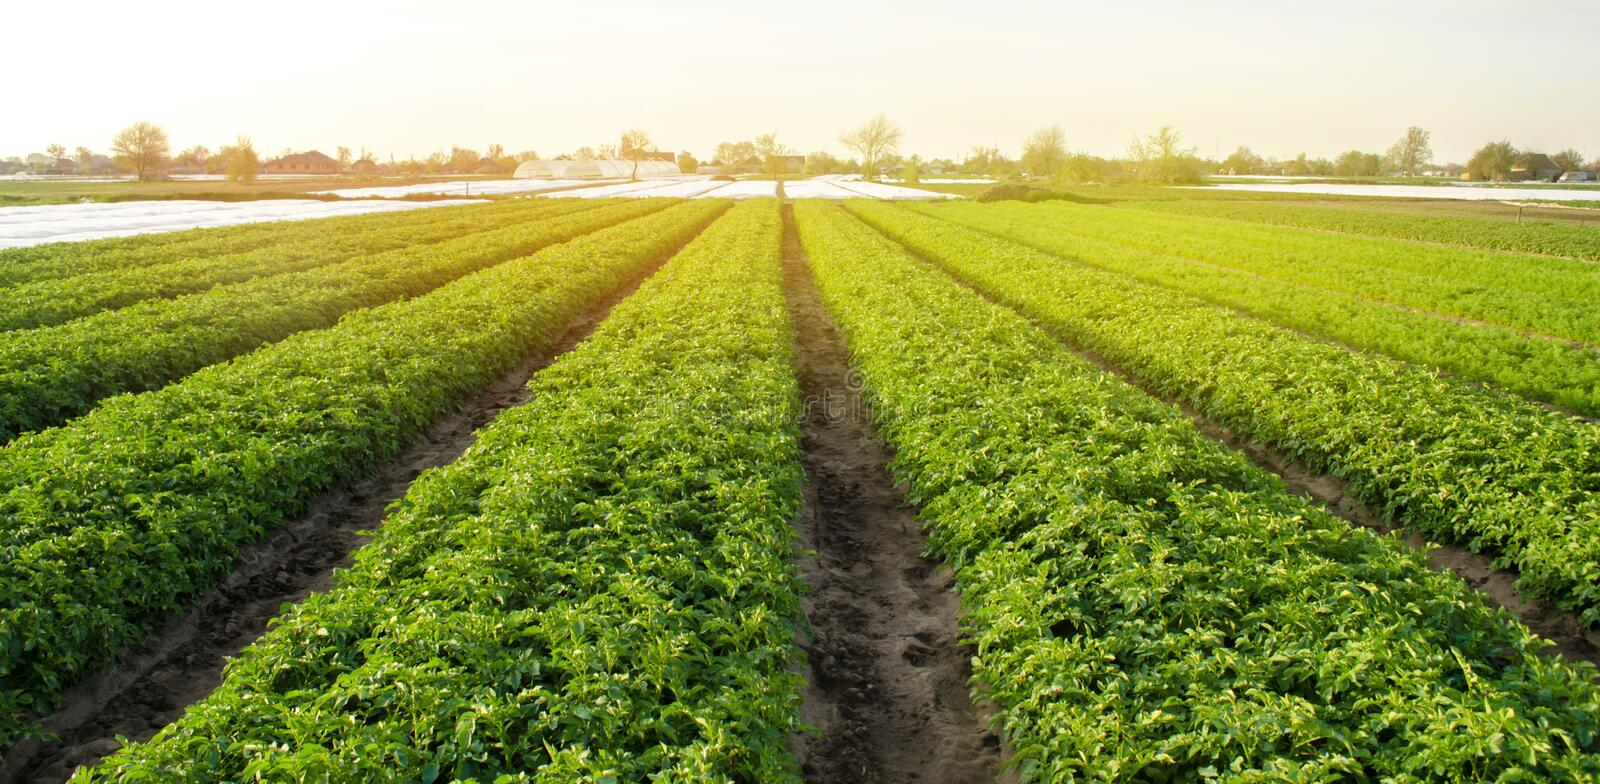 Potato plantations are grow on the field on a sunny day. Growing organic vegetables in the field. Vegetable rows. Agriculture. stock images